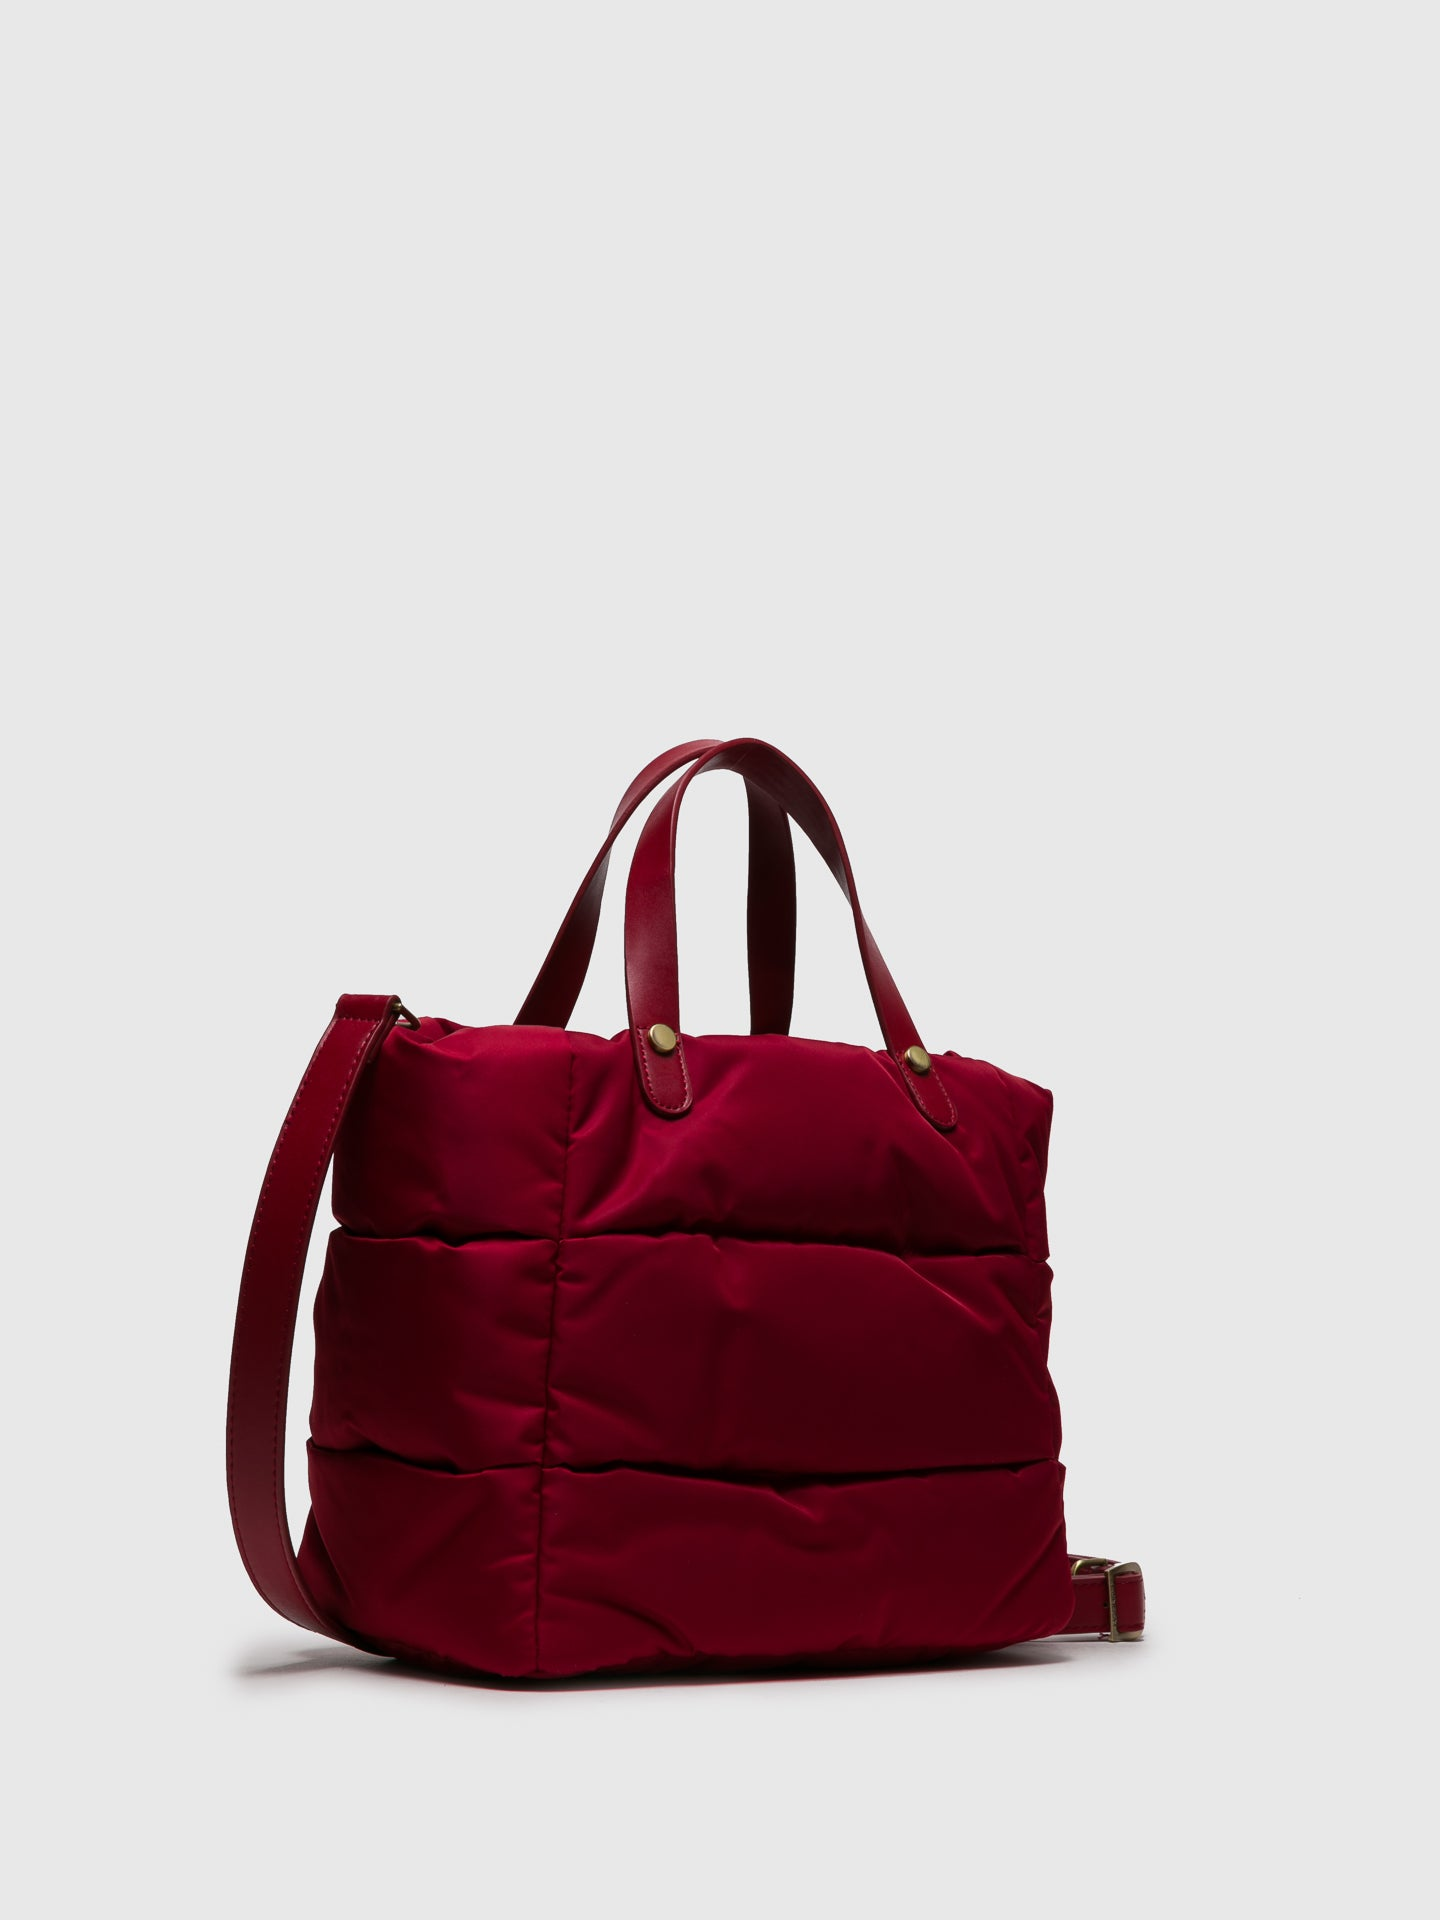 Fly London Red Handbag